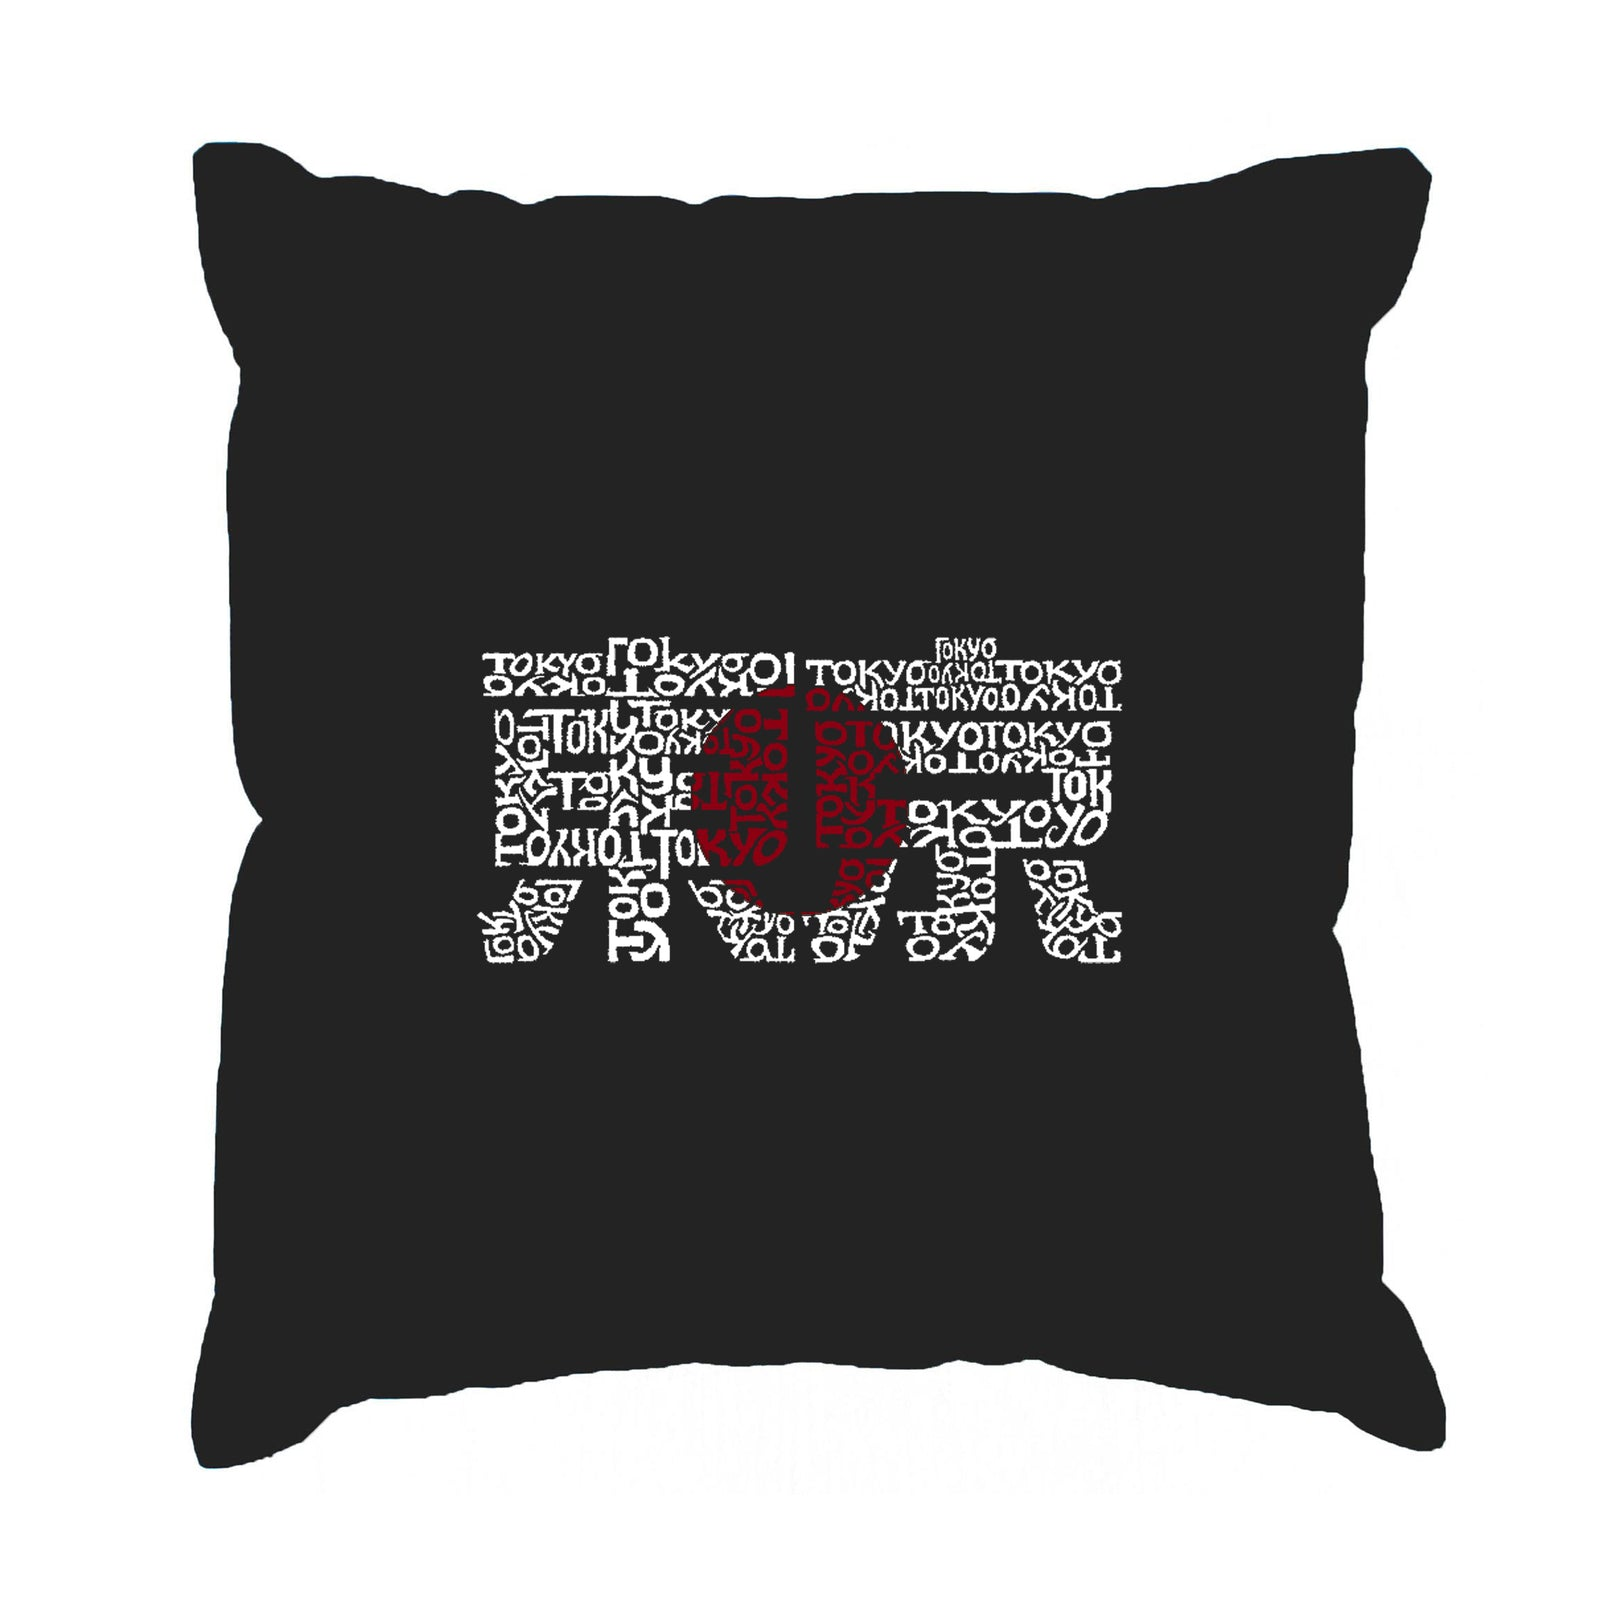 Throw Pillow Cover - Word Art - Tokyo Sun